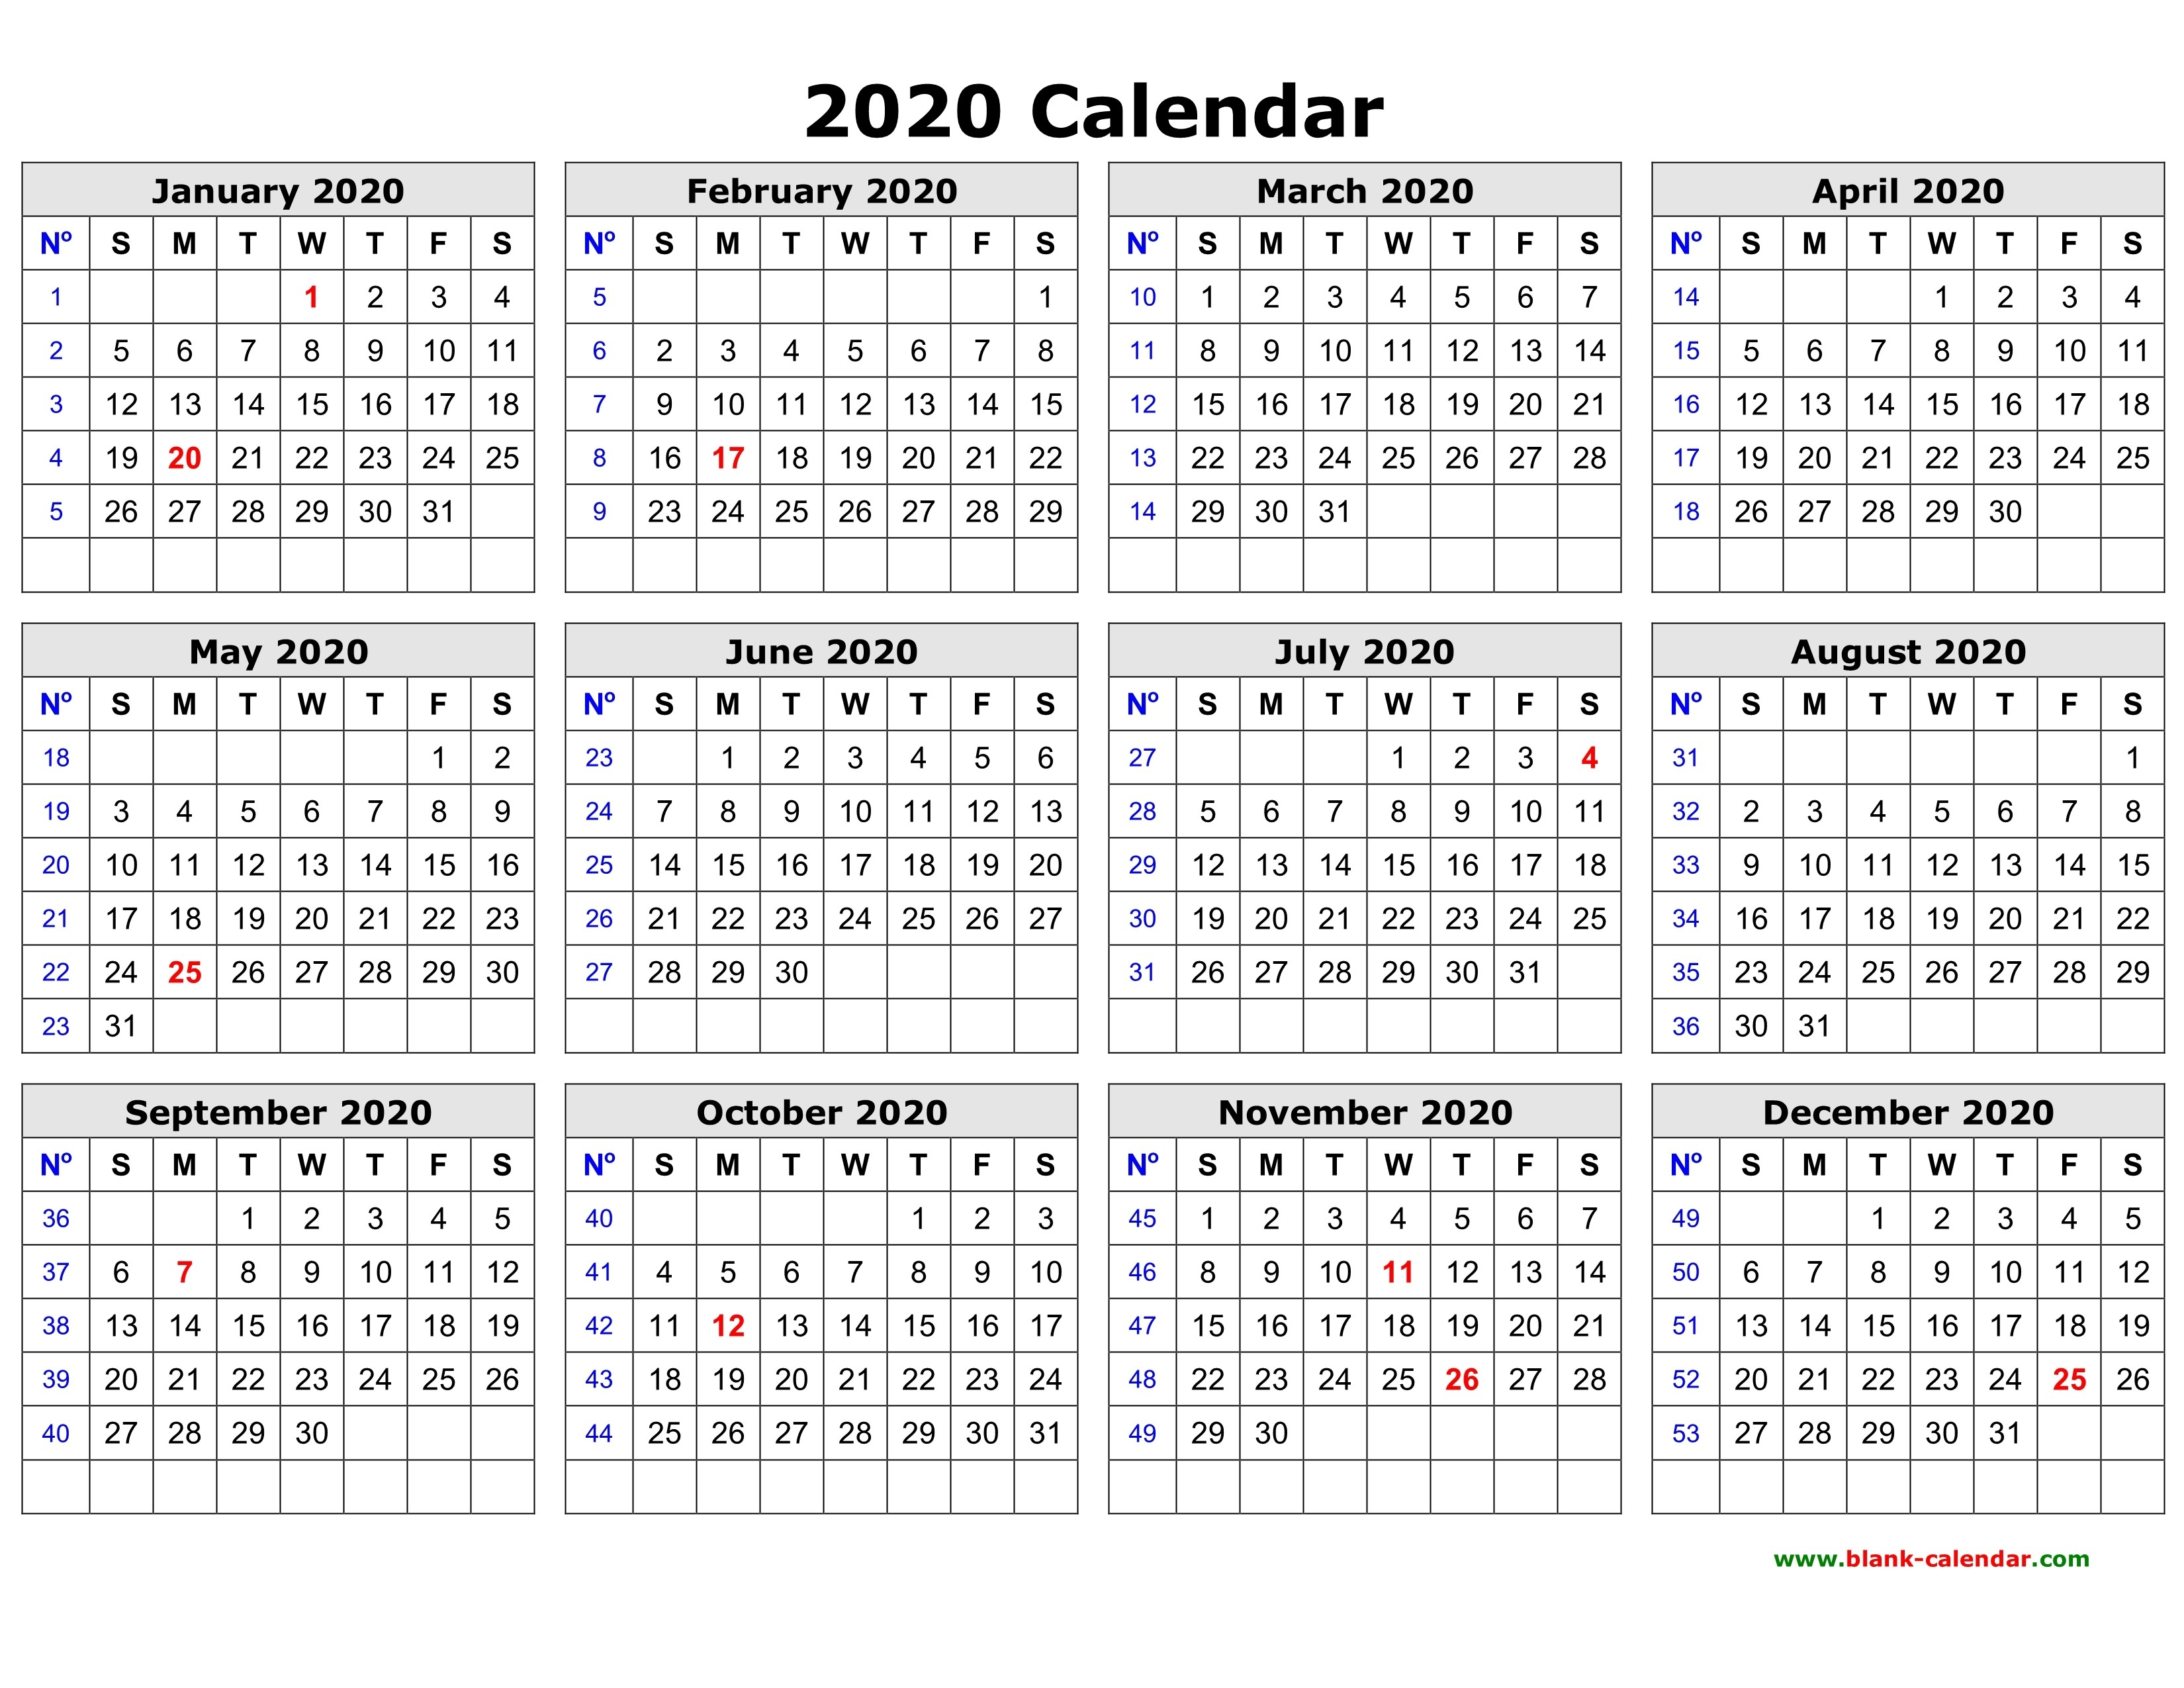 Free Download Printable Calendar 2020 In One Page, Clean Design.-Blank Fill In Calendars 2020 Printable